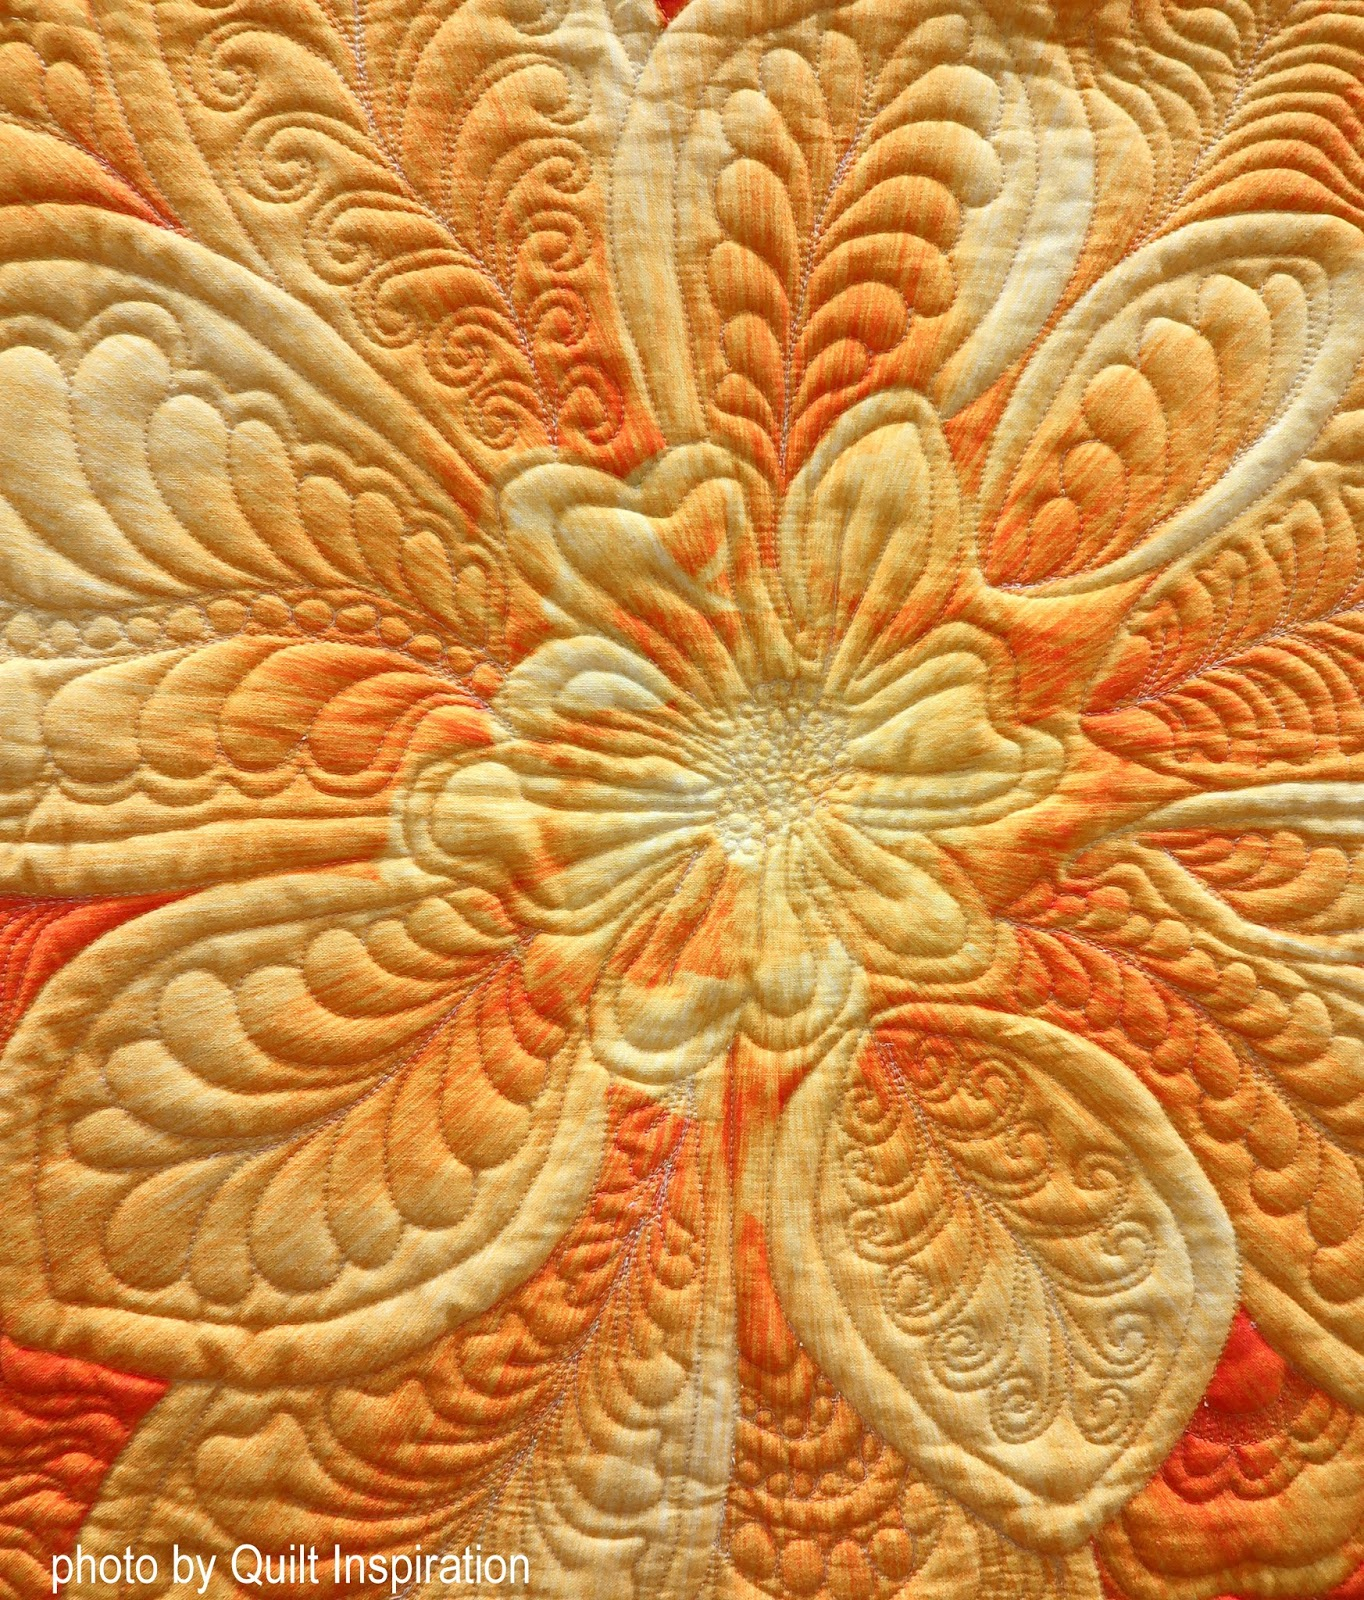 Quilt Inspiration: May 2019